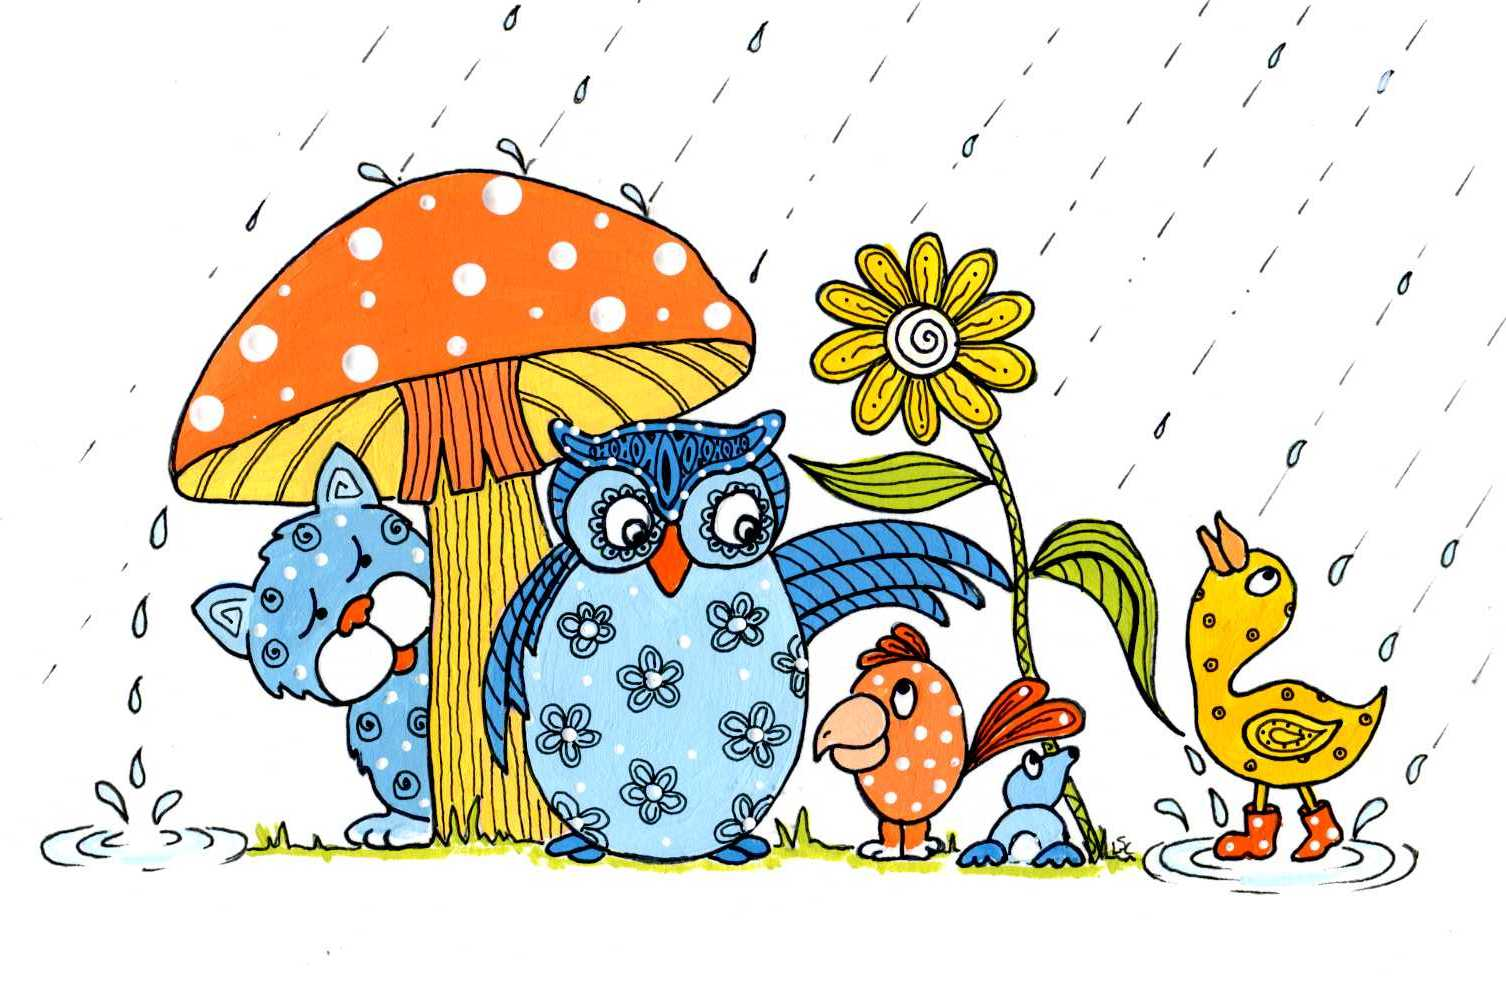 Go check out other April showers from Tuesday onwards over on Mr T's ...